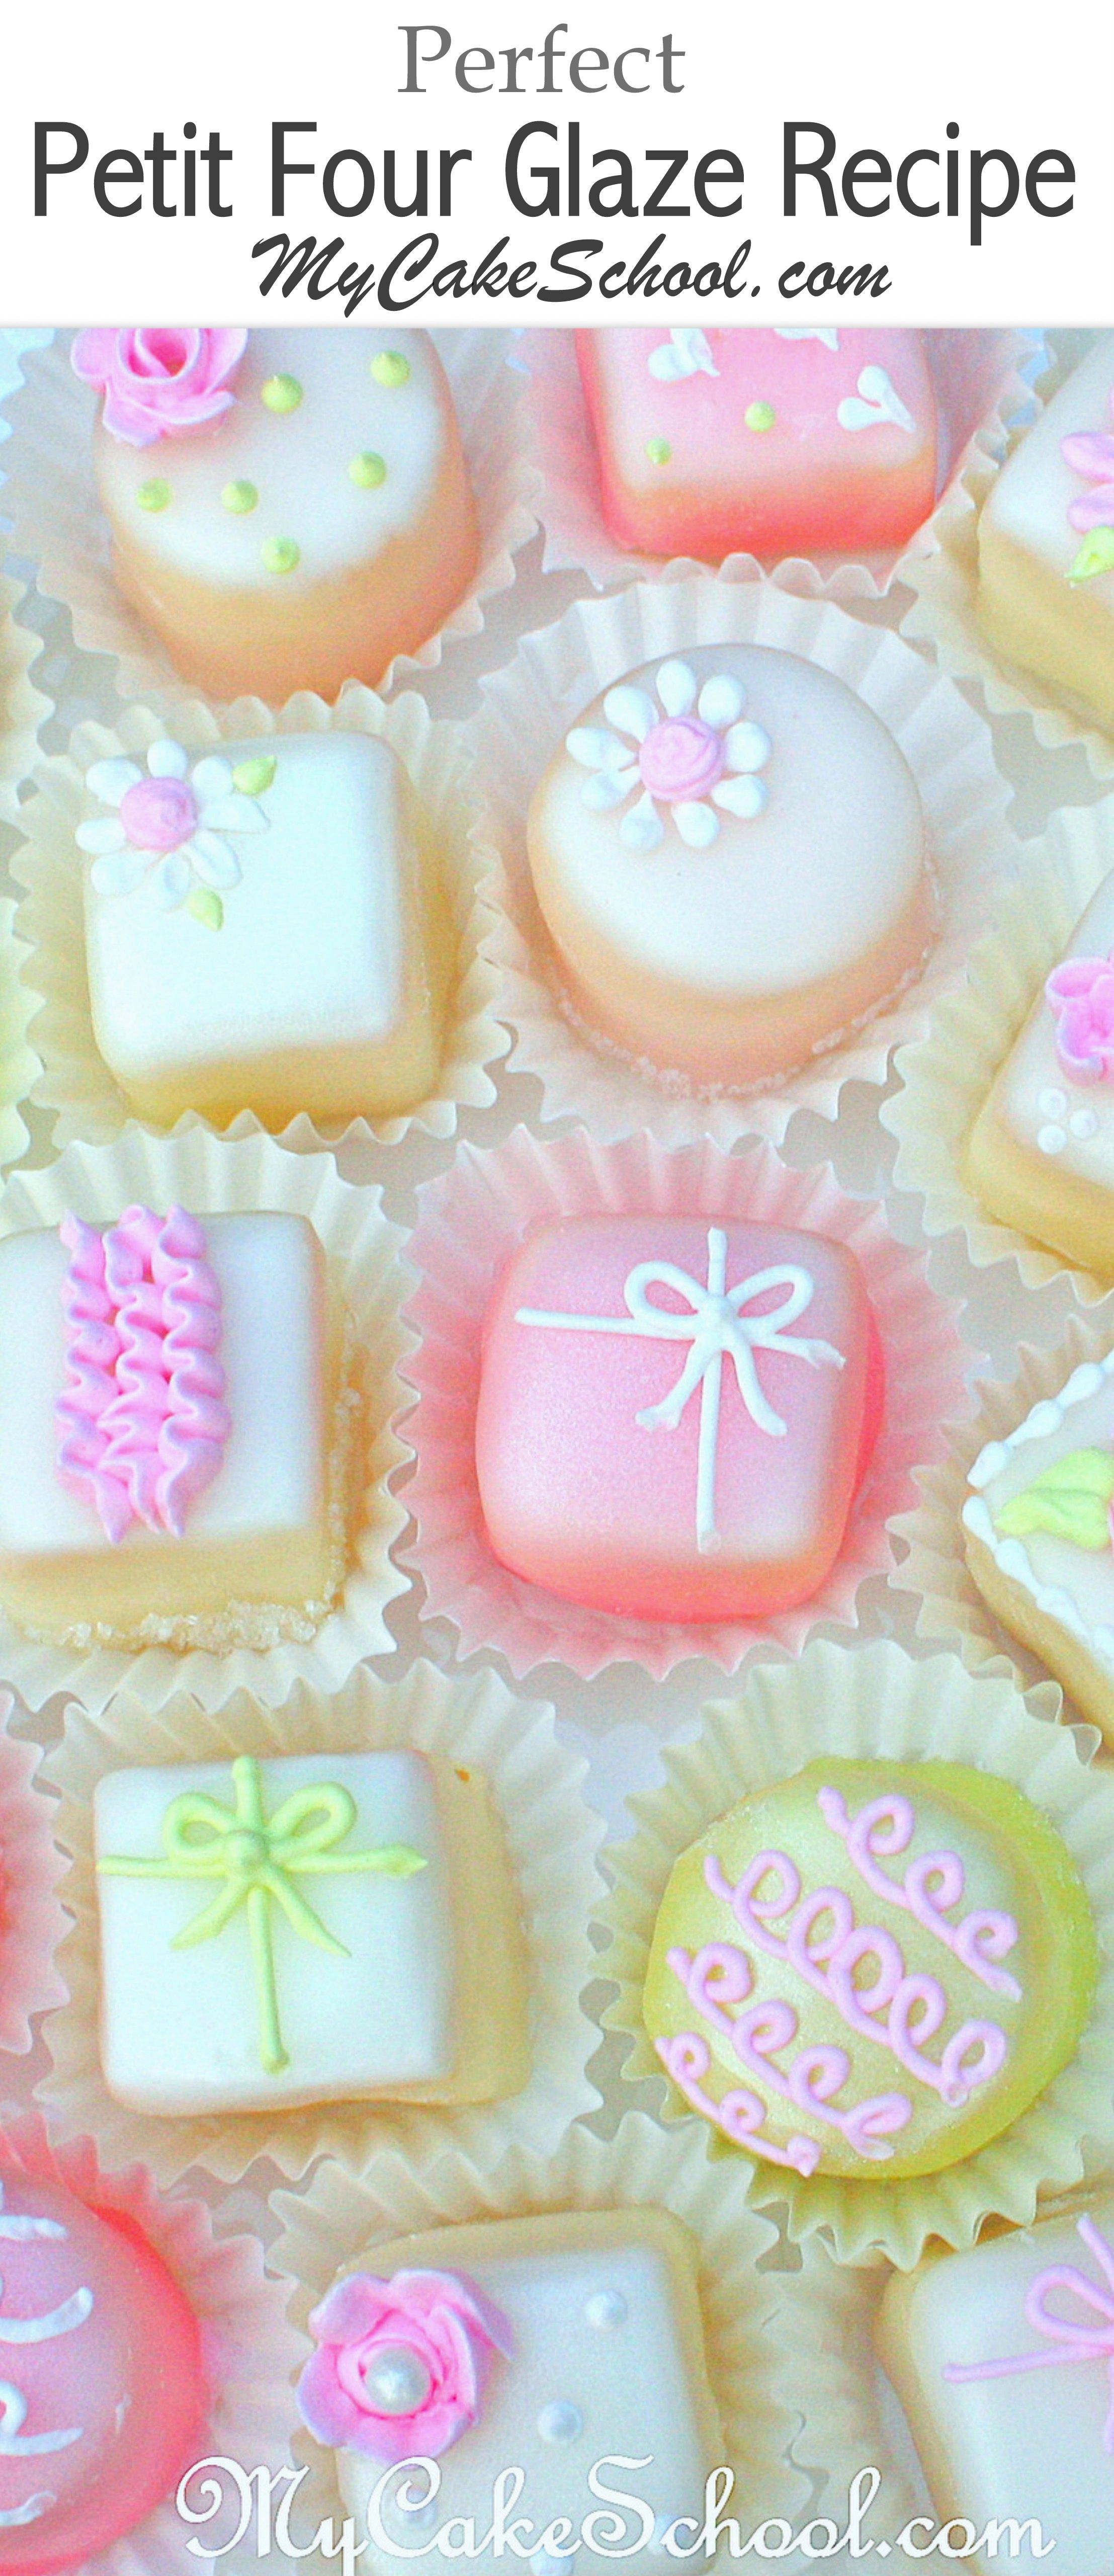 Sharing our favorite glaze for petit fours! You will love this classic recipe! My Cake School.